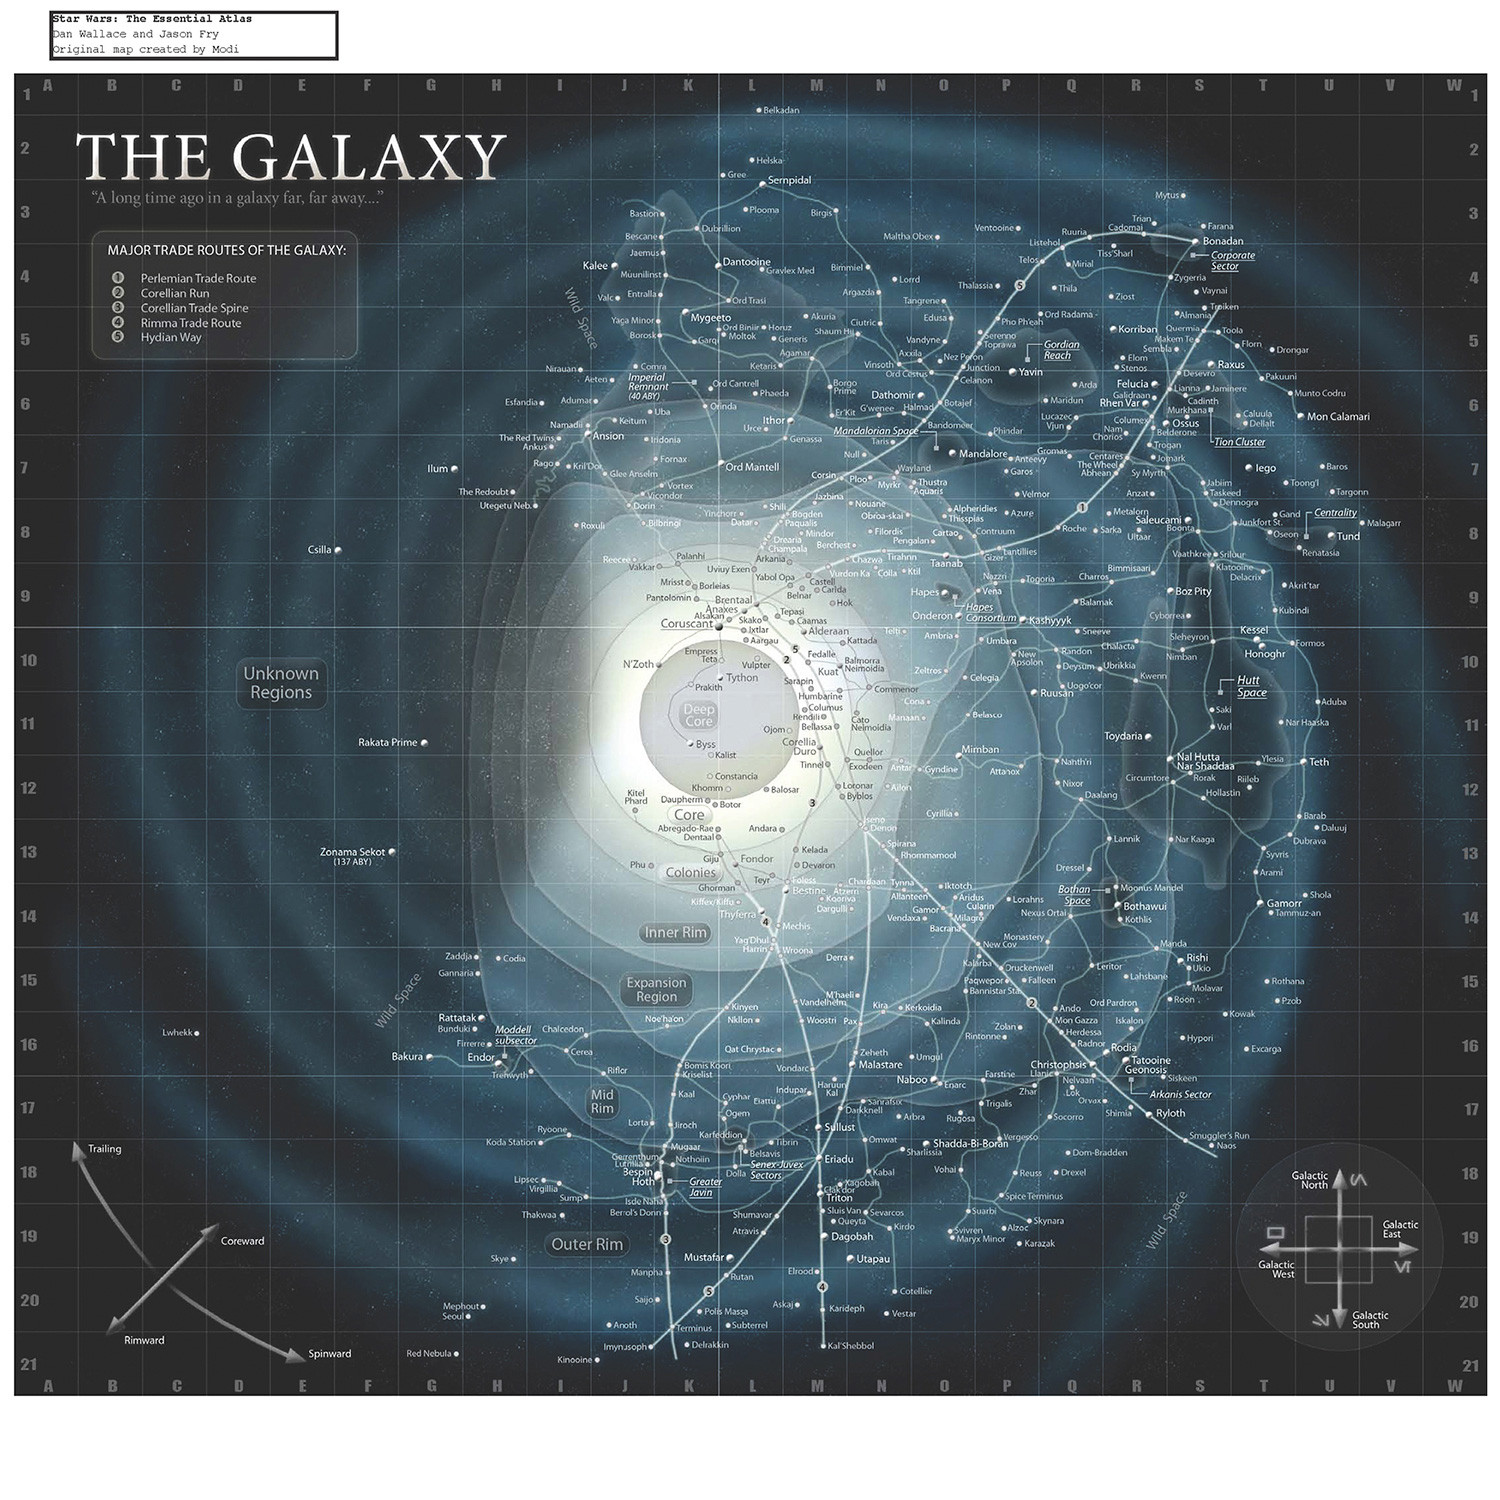 essential-atlas-star-wars-galaxy-map.jpg